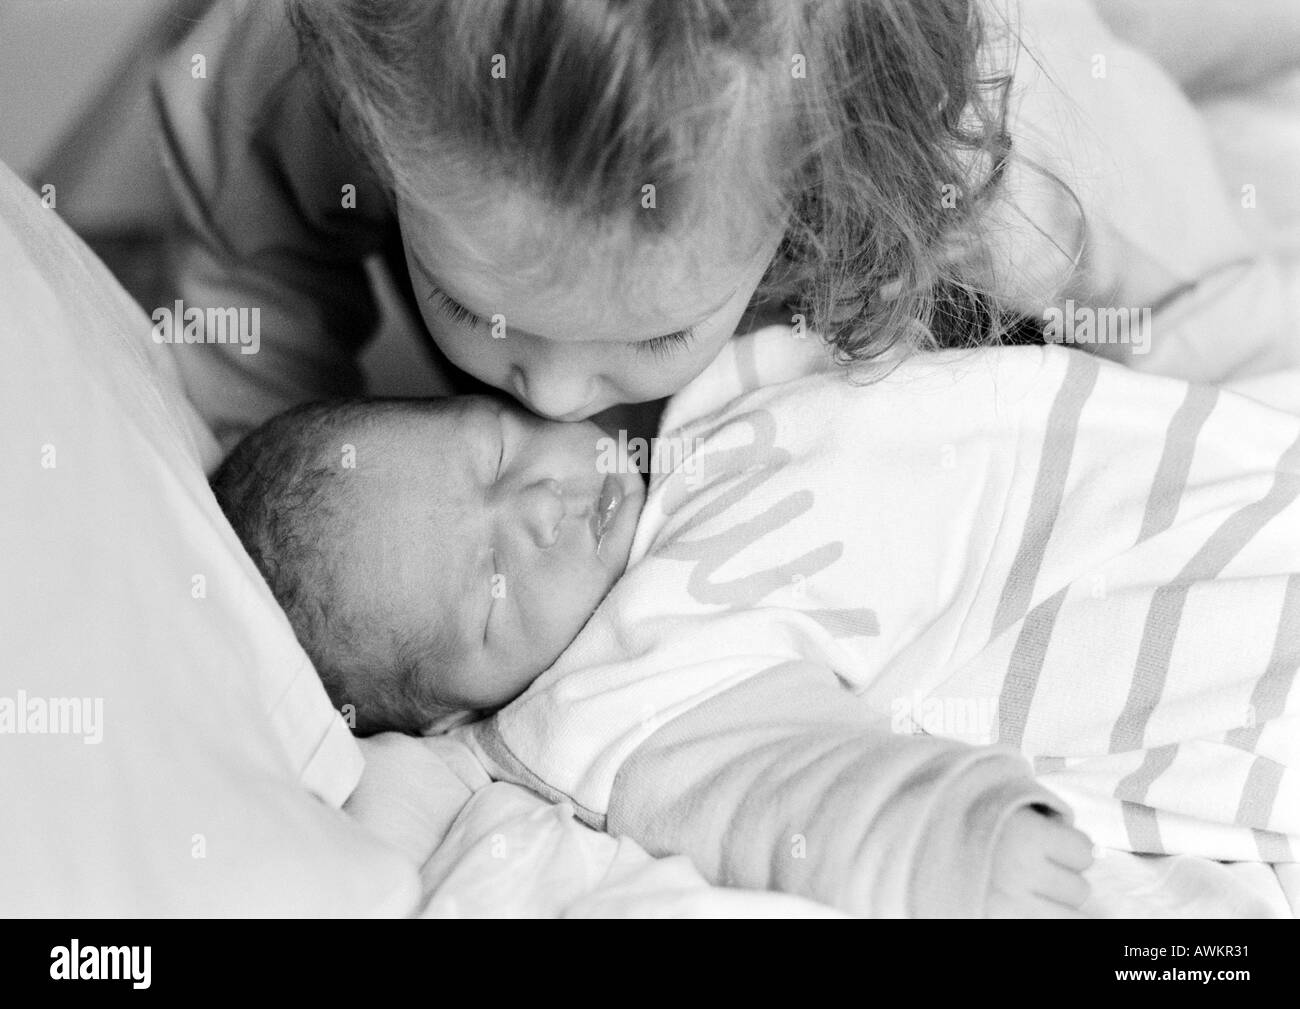 Girl kissing baby, b&w - Stock Image